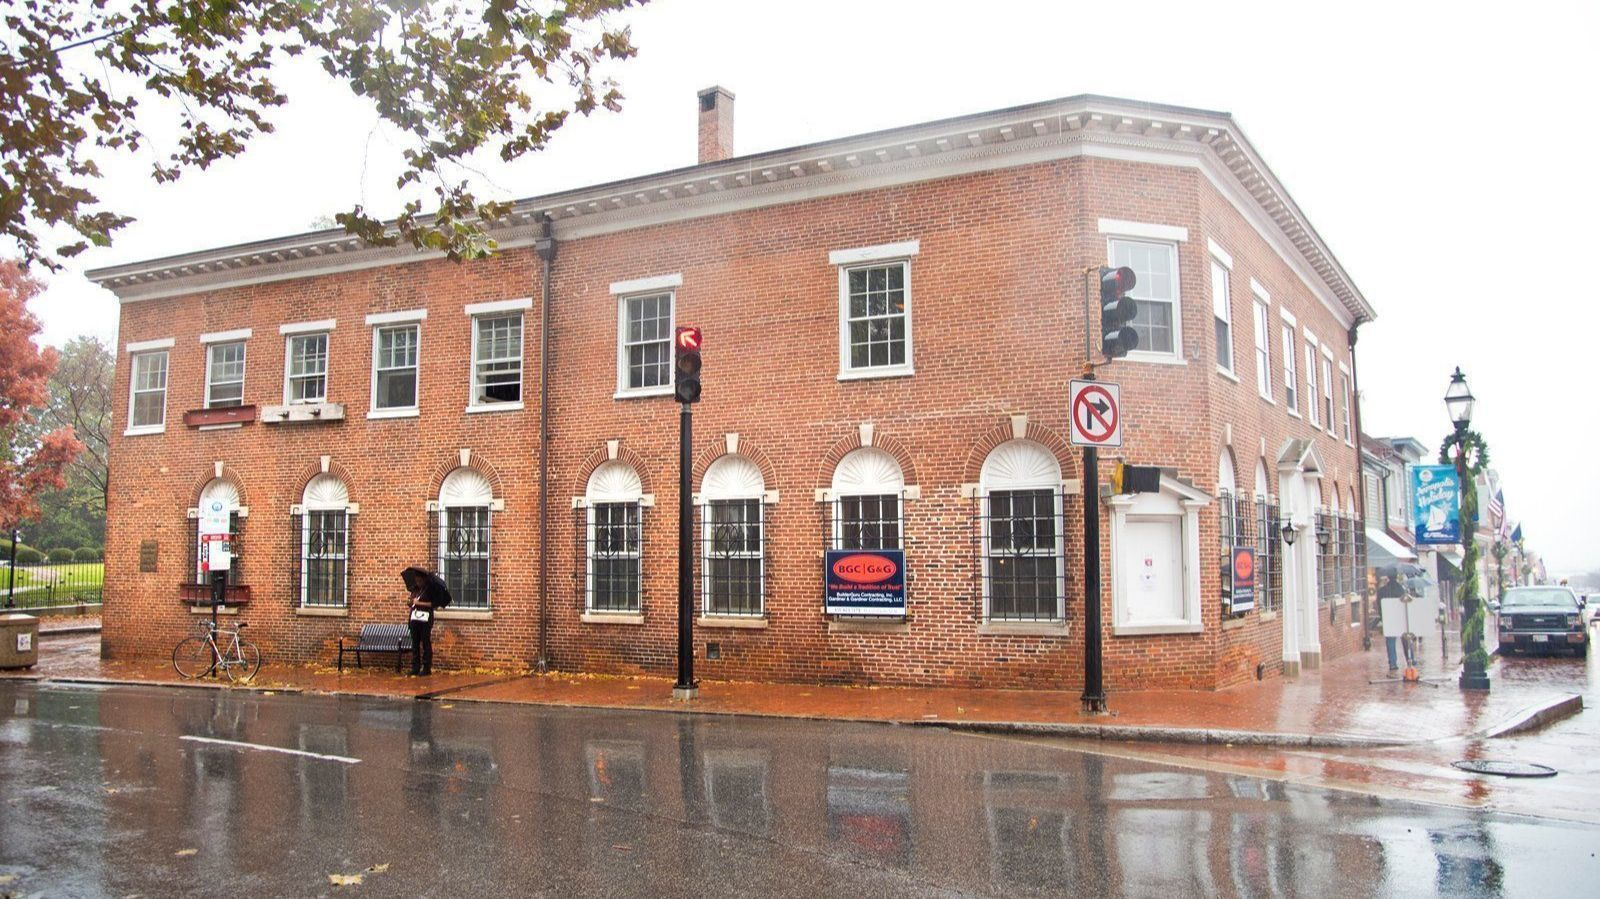 Washington, D.C., restaurant group to open new property in historic Annapolis